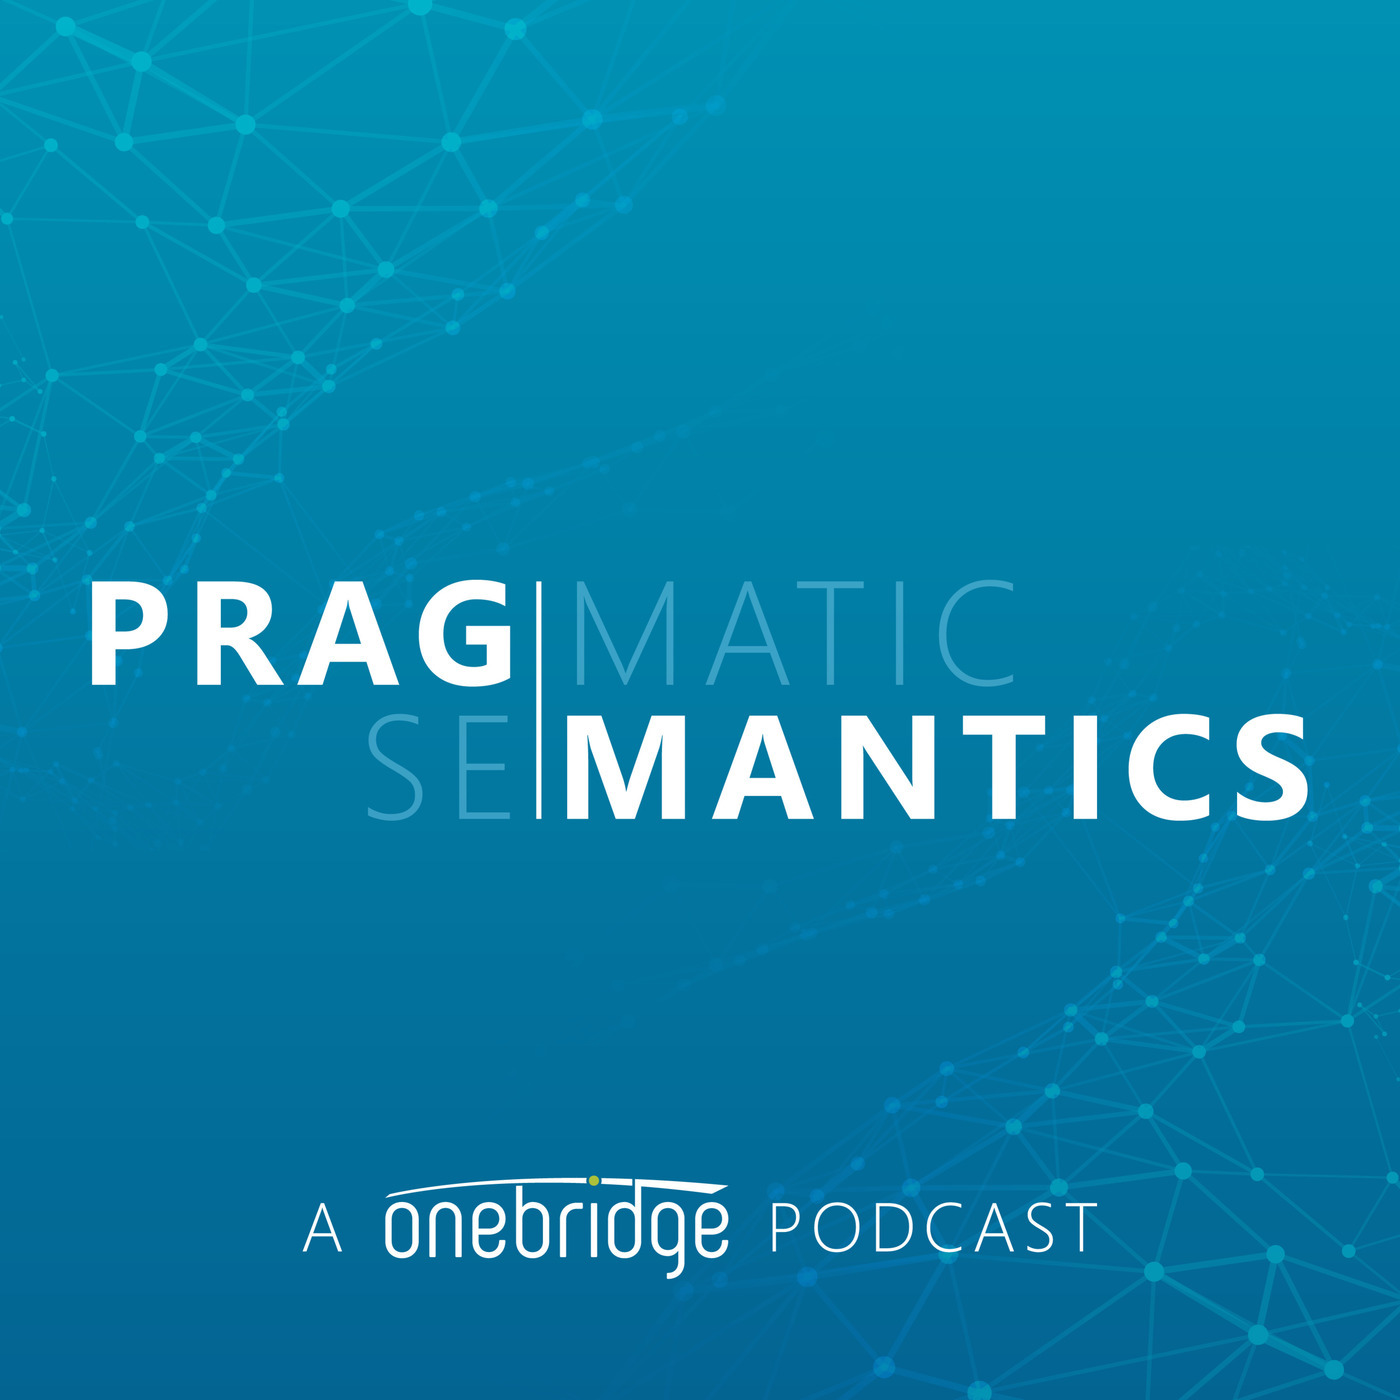 Pragmantics - The Intersection of Data, Analytics, and Everyday Life 1: Lies, Misconceptions, and the Truth About Marketing Data and Customer Analytics